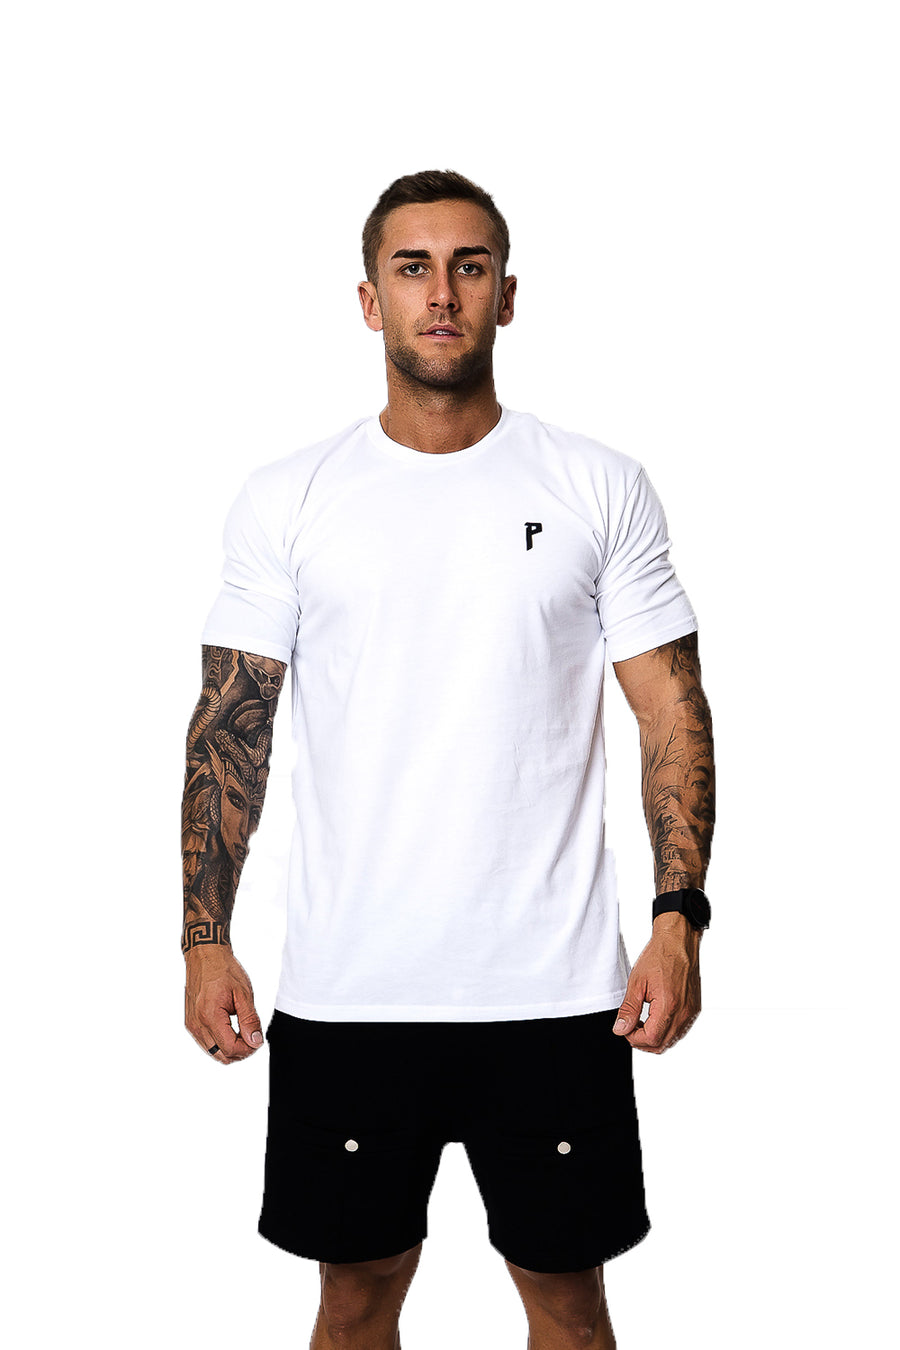 Iconic White/ Black Tee